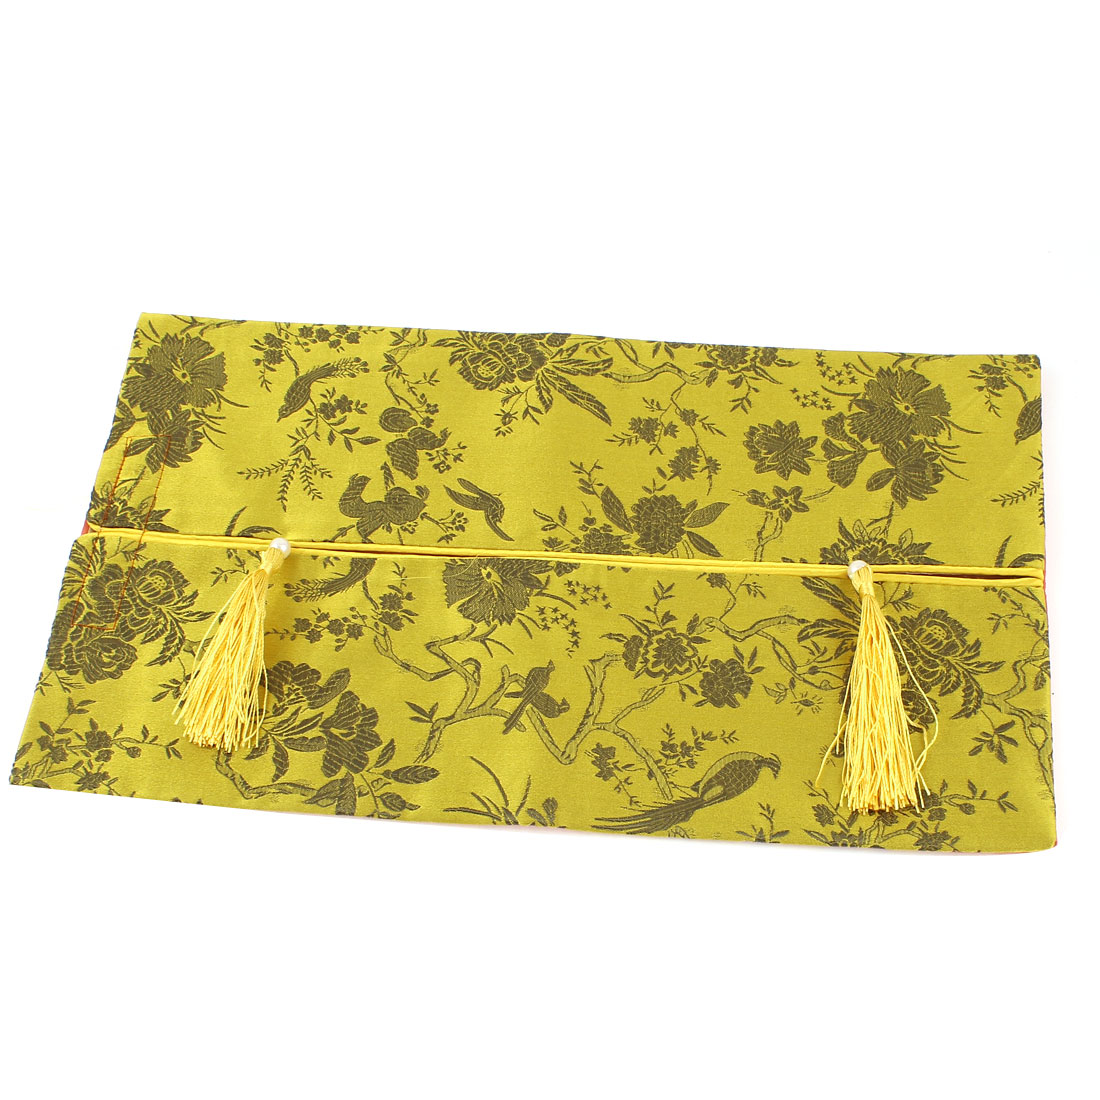 Rectangle Shape Embroidery Floral Pattern Tassel Decor Tissue Box Cover Gold Tone